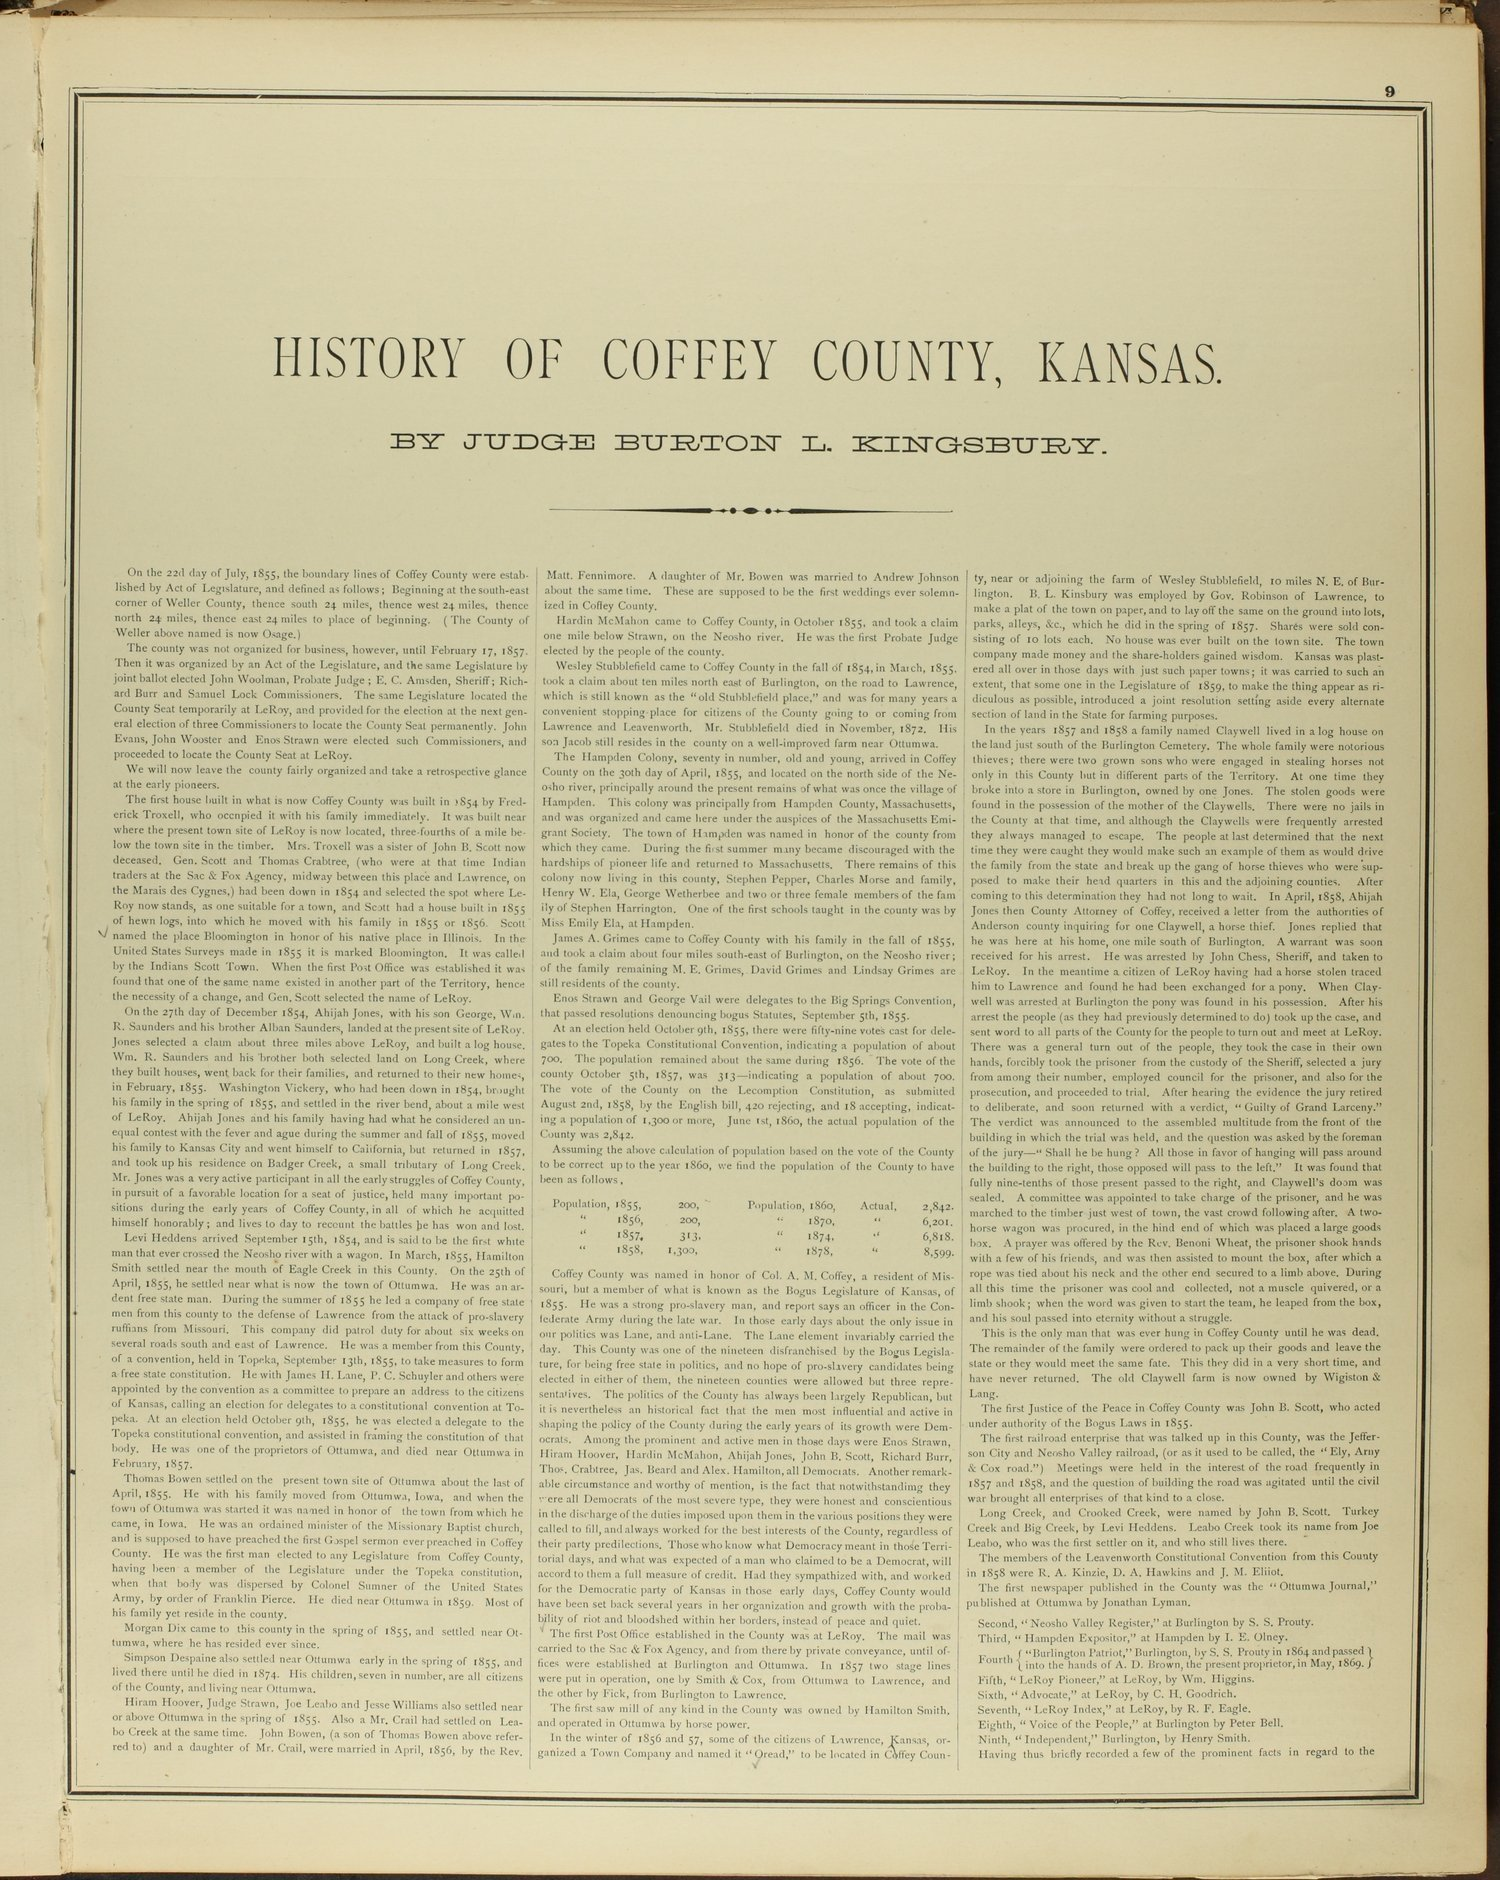 An illustrated historical atlas of Coffey County, Kansas - 9